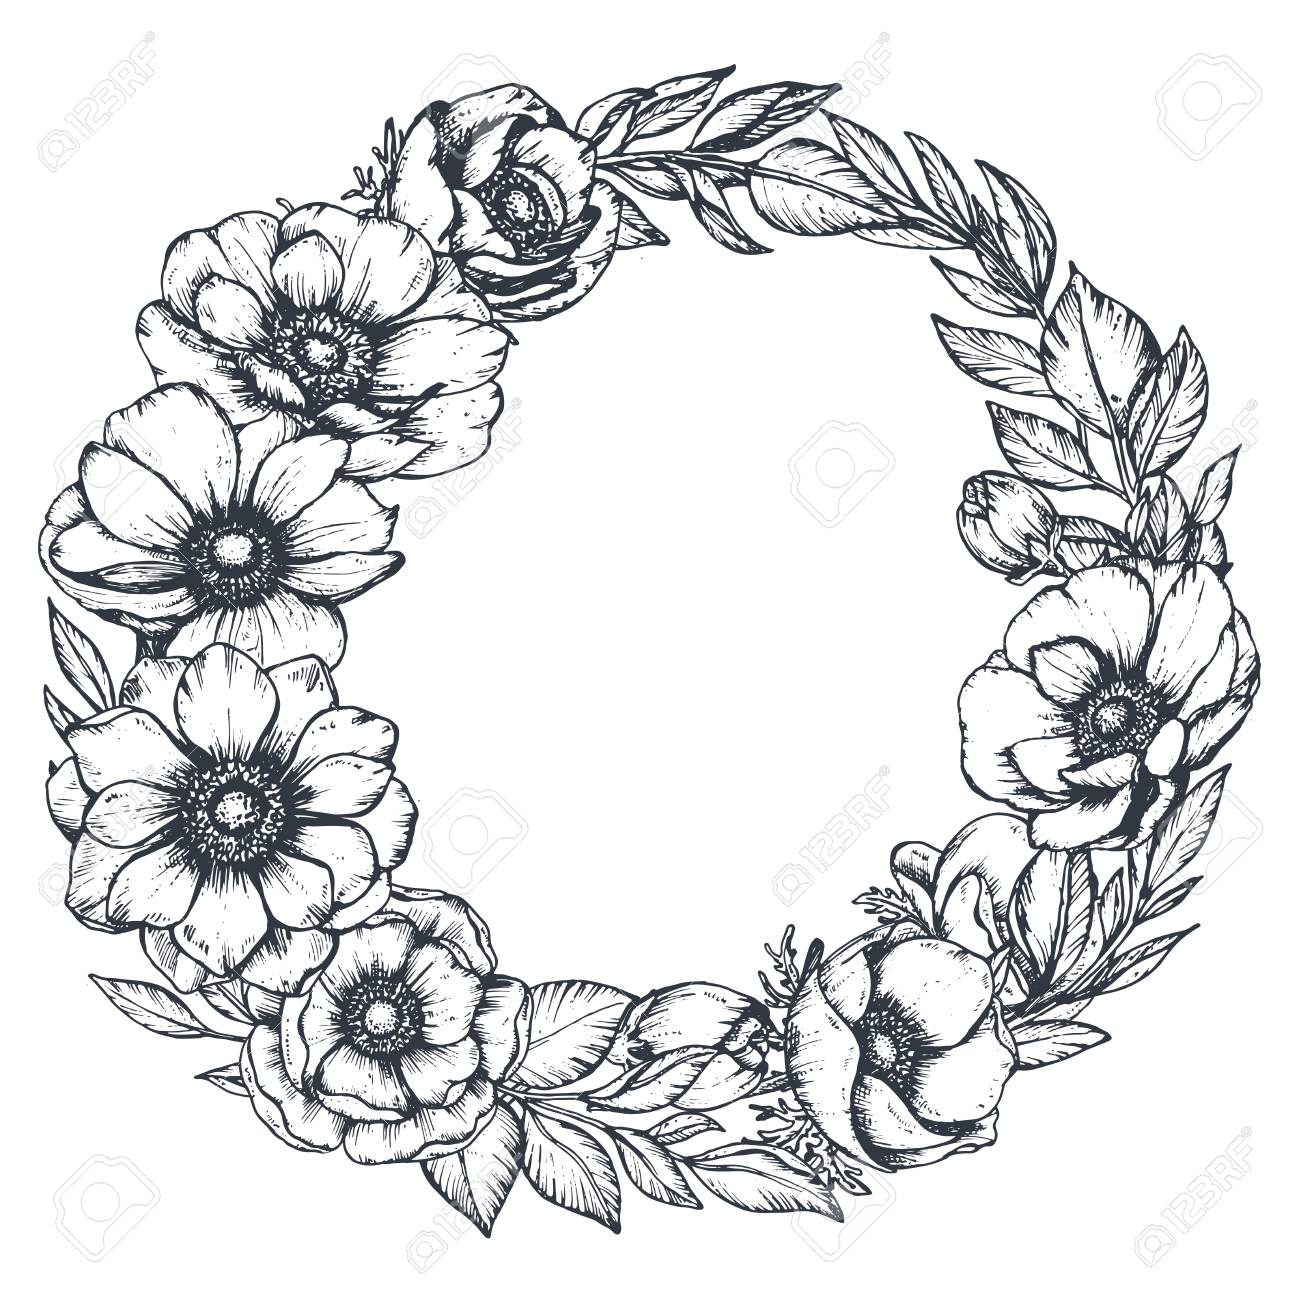 Anemones clipart black and white jpg freeuse stock Vector black and white floral wreath of hand drawn anemone flowers ... jpg freeuse stock